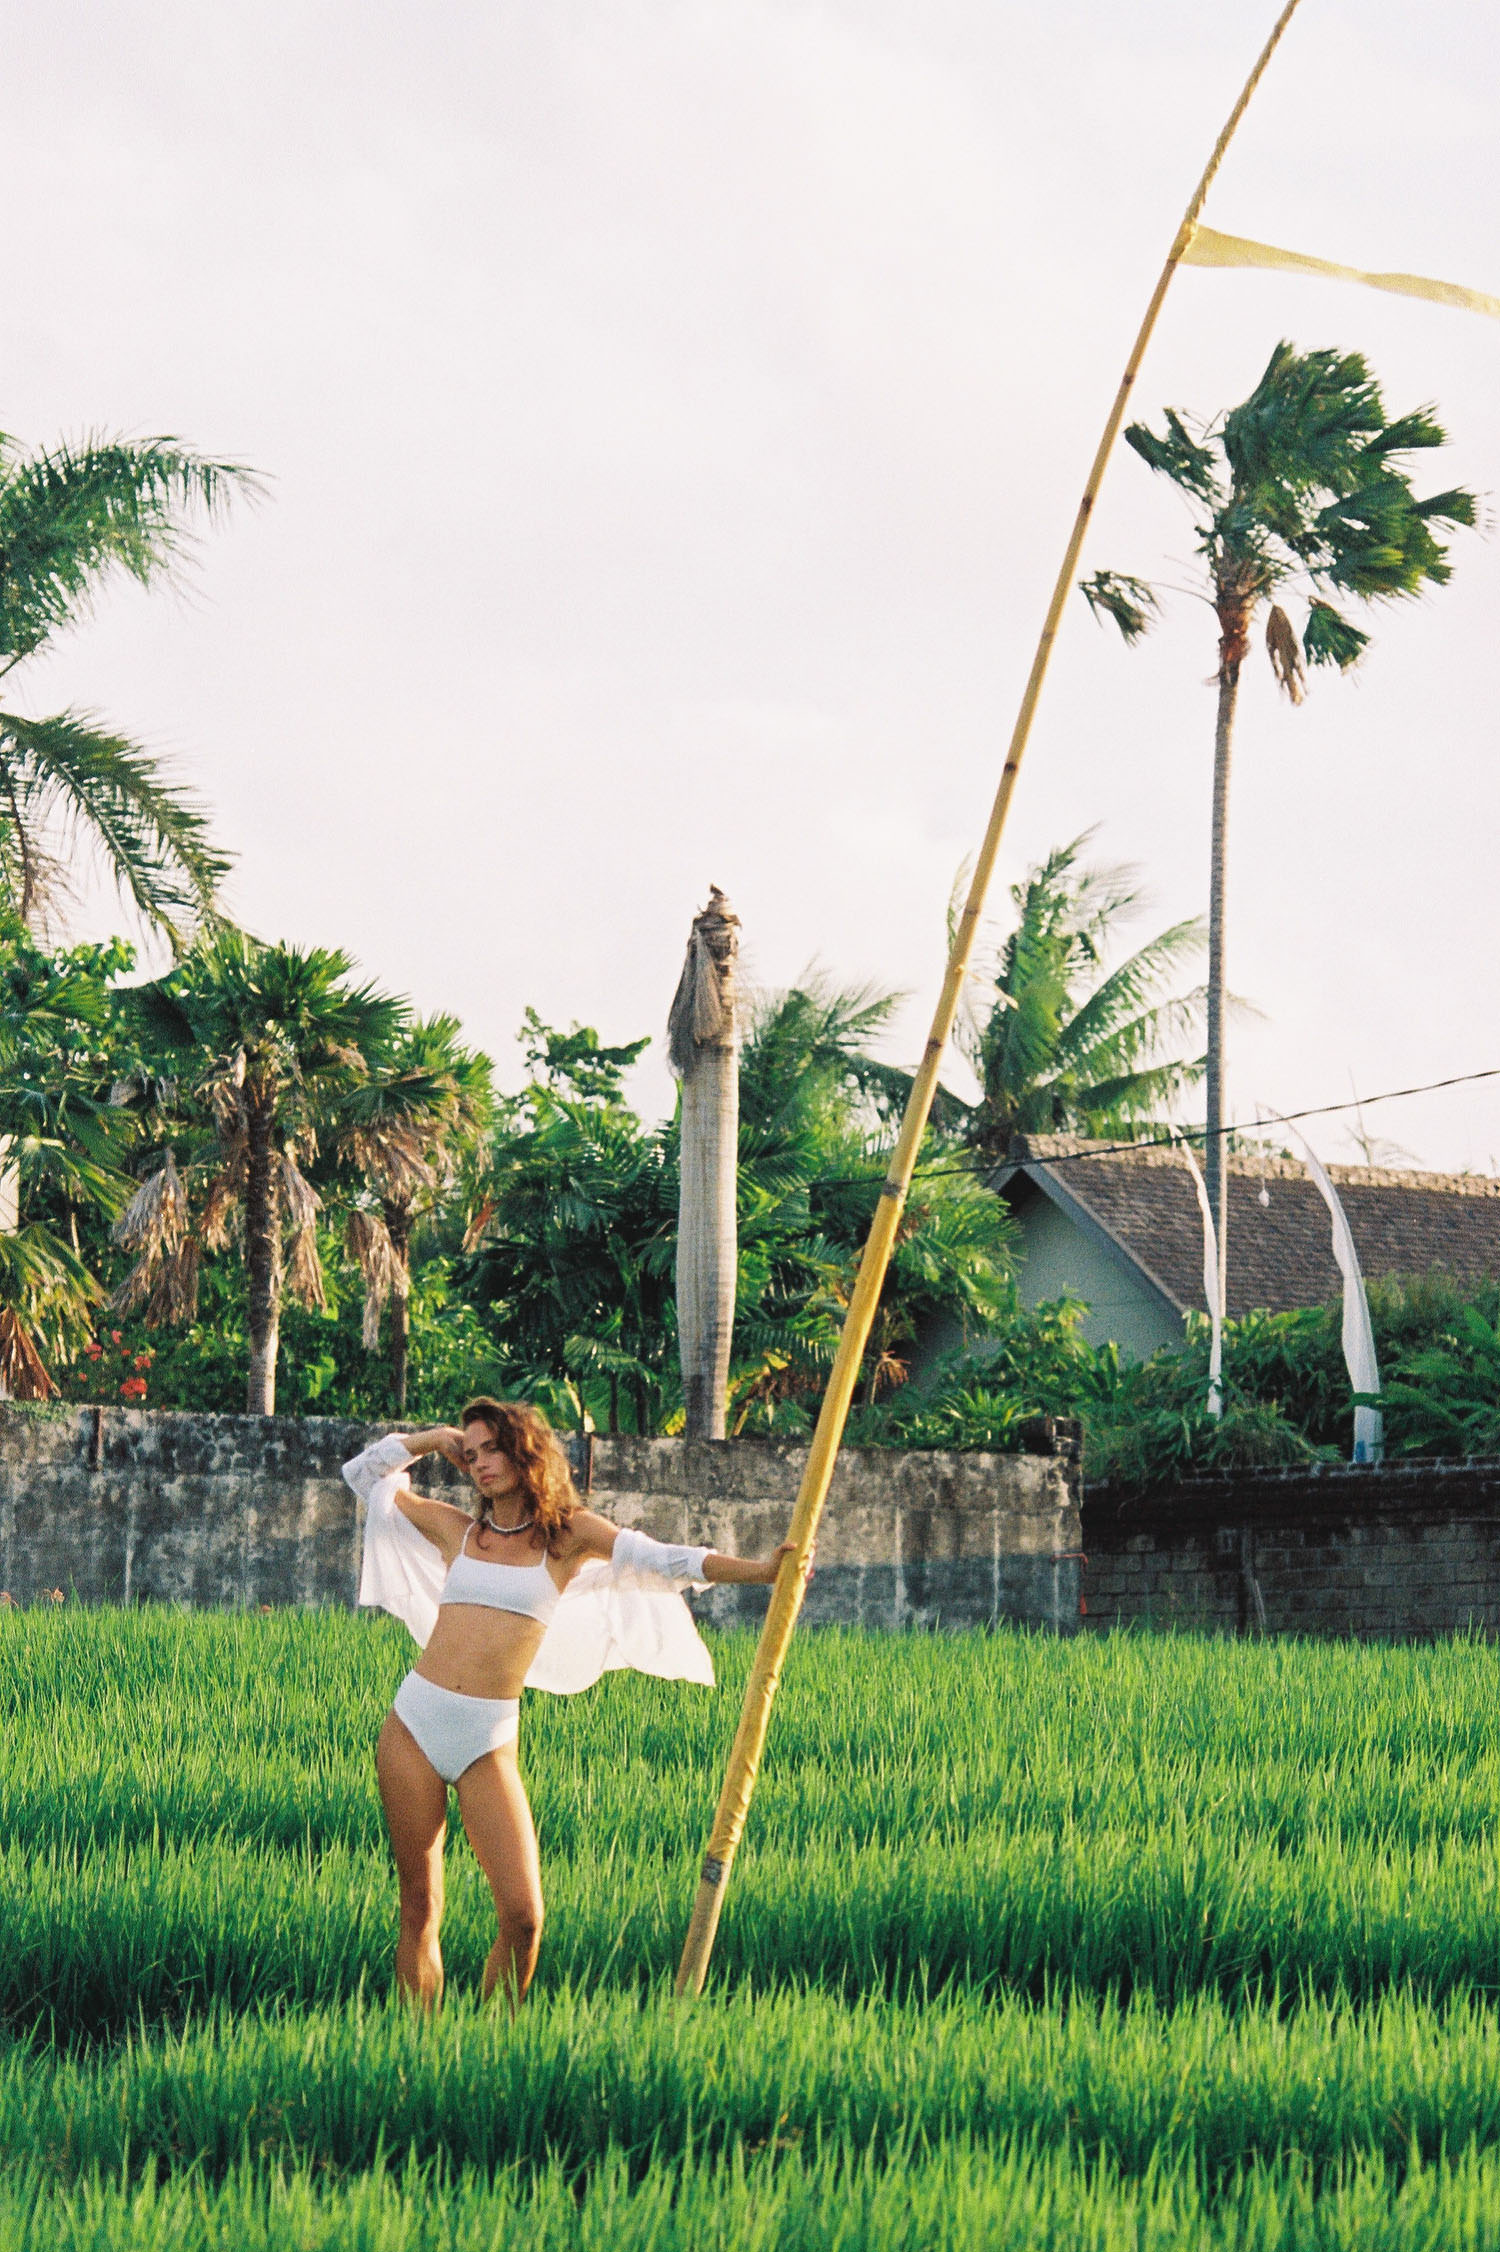 Bali on Film